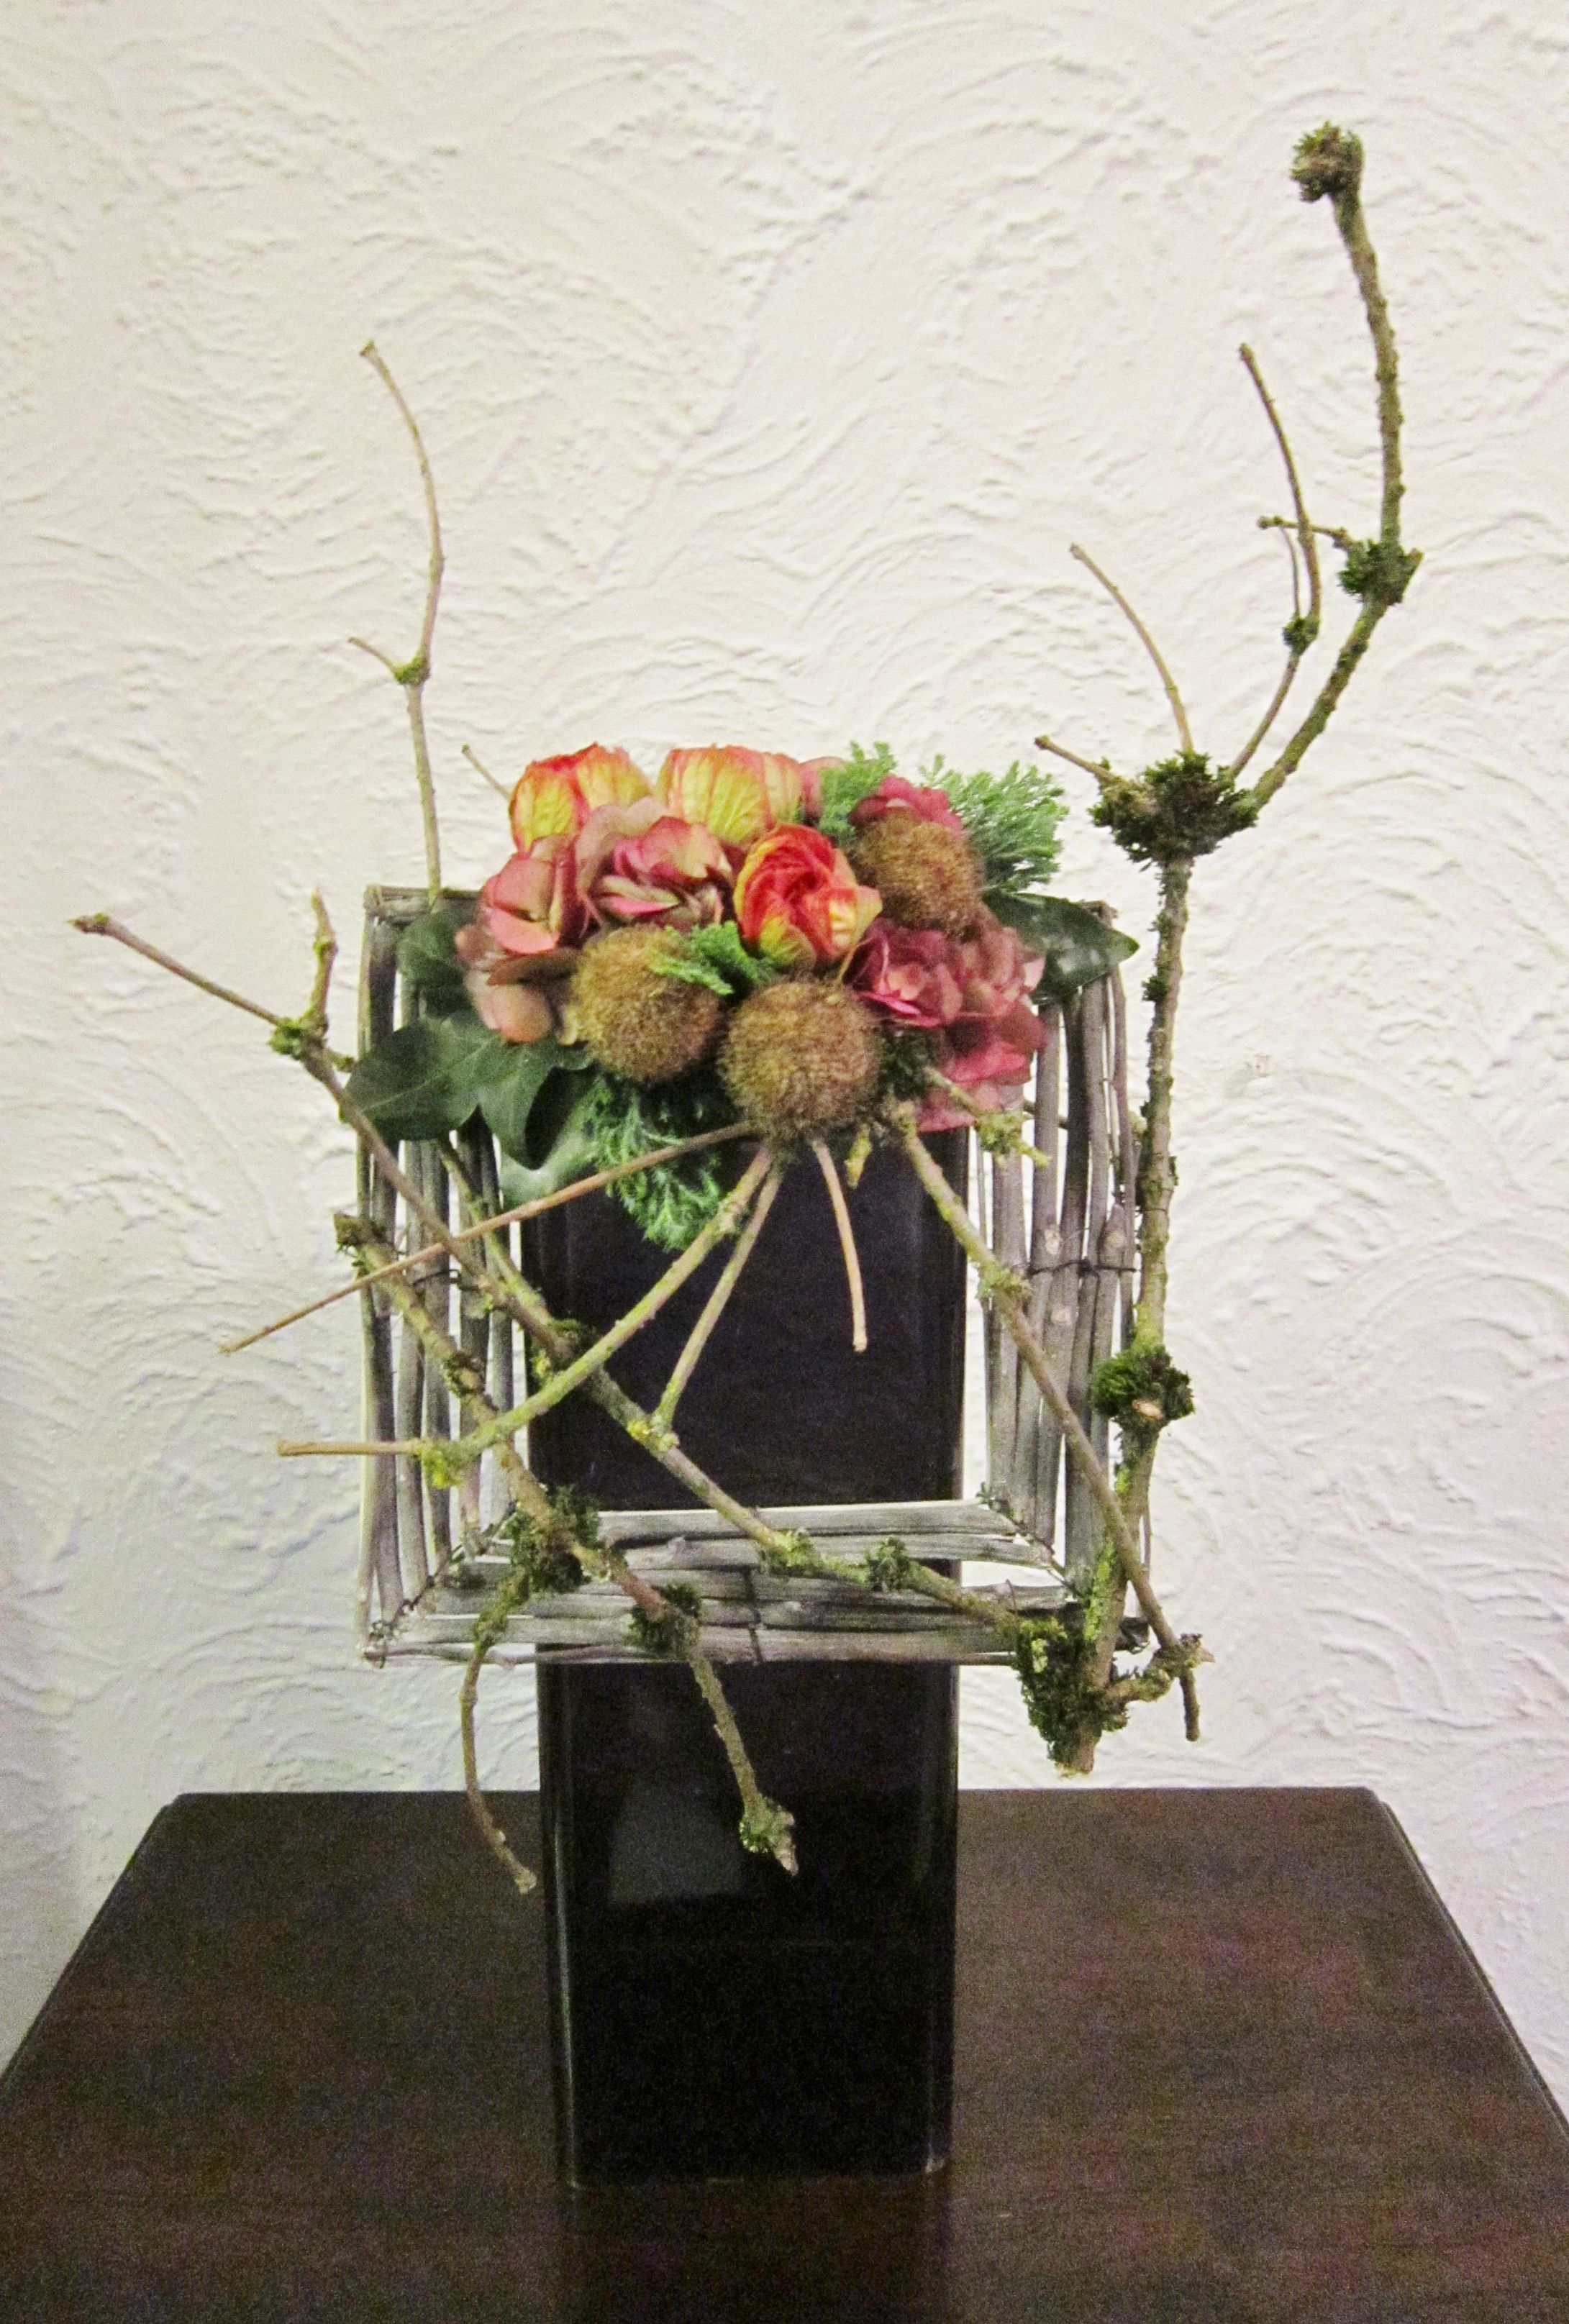 Flower Arrangement With List Of Branches On Vase Source Unknown